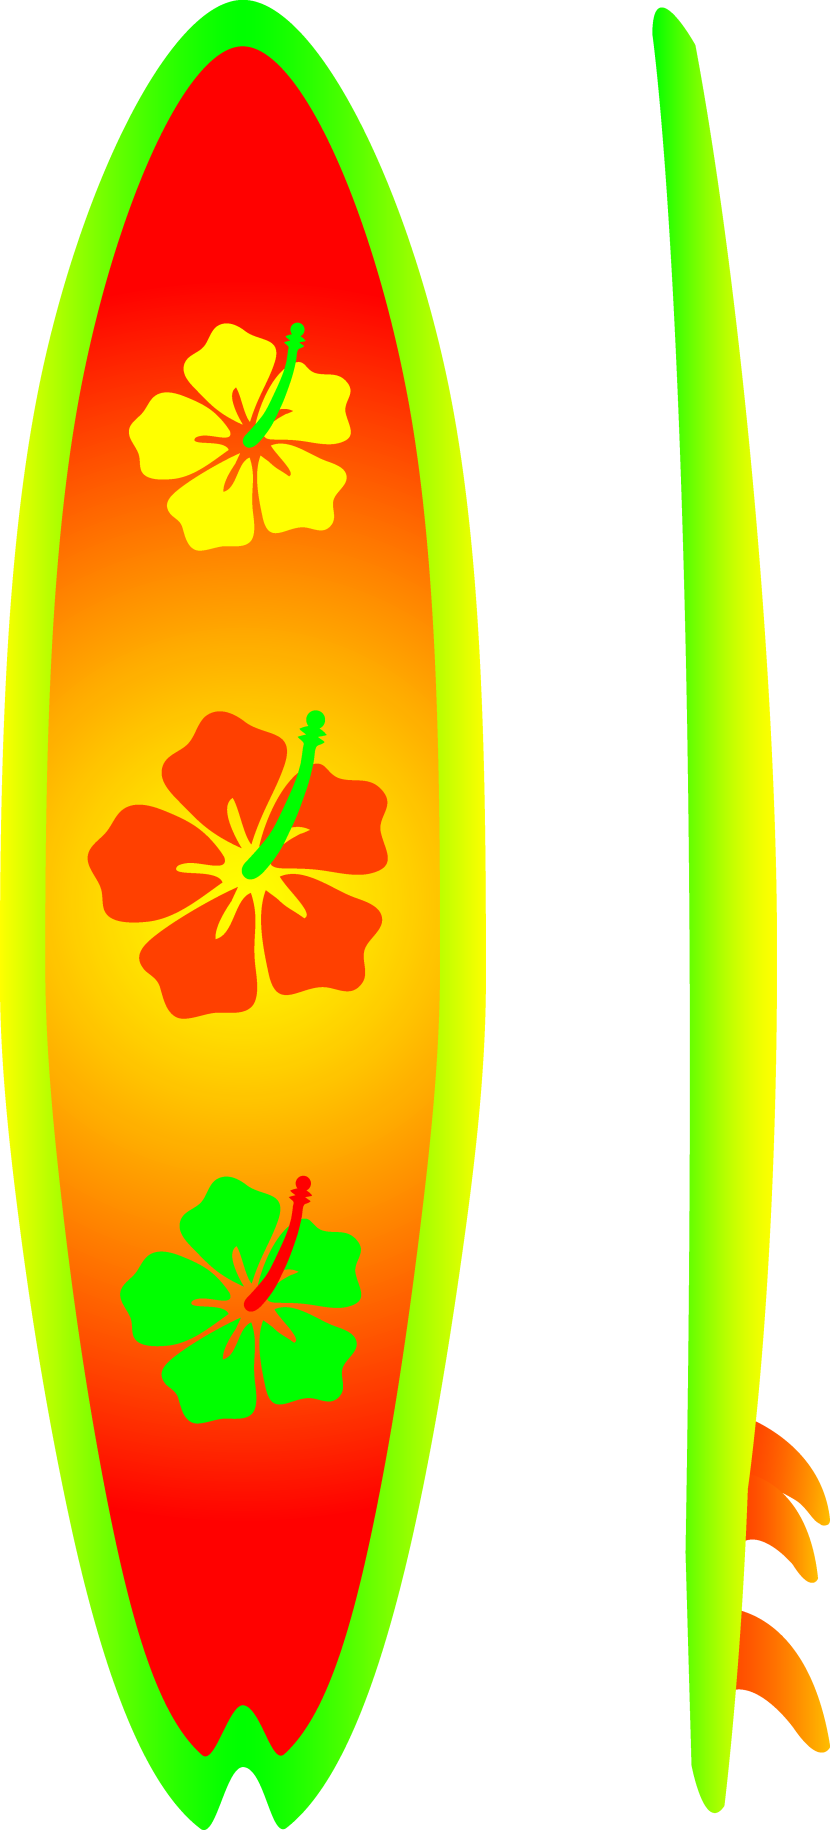 Surfboard with transparent background clipart graphic download Clipart arrow surfboard - ClipartFest graphic download